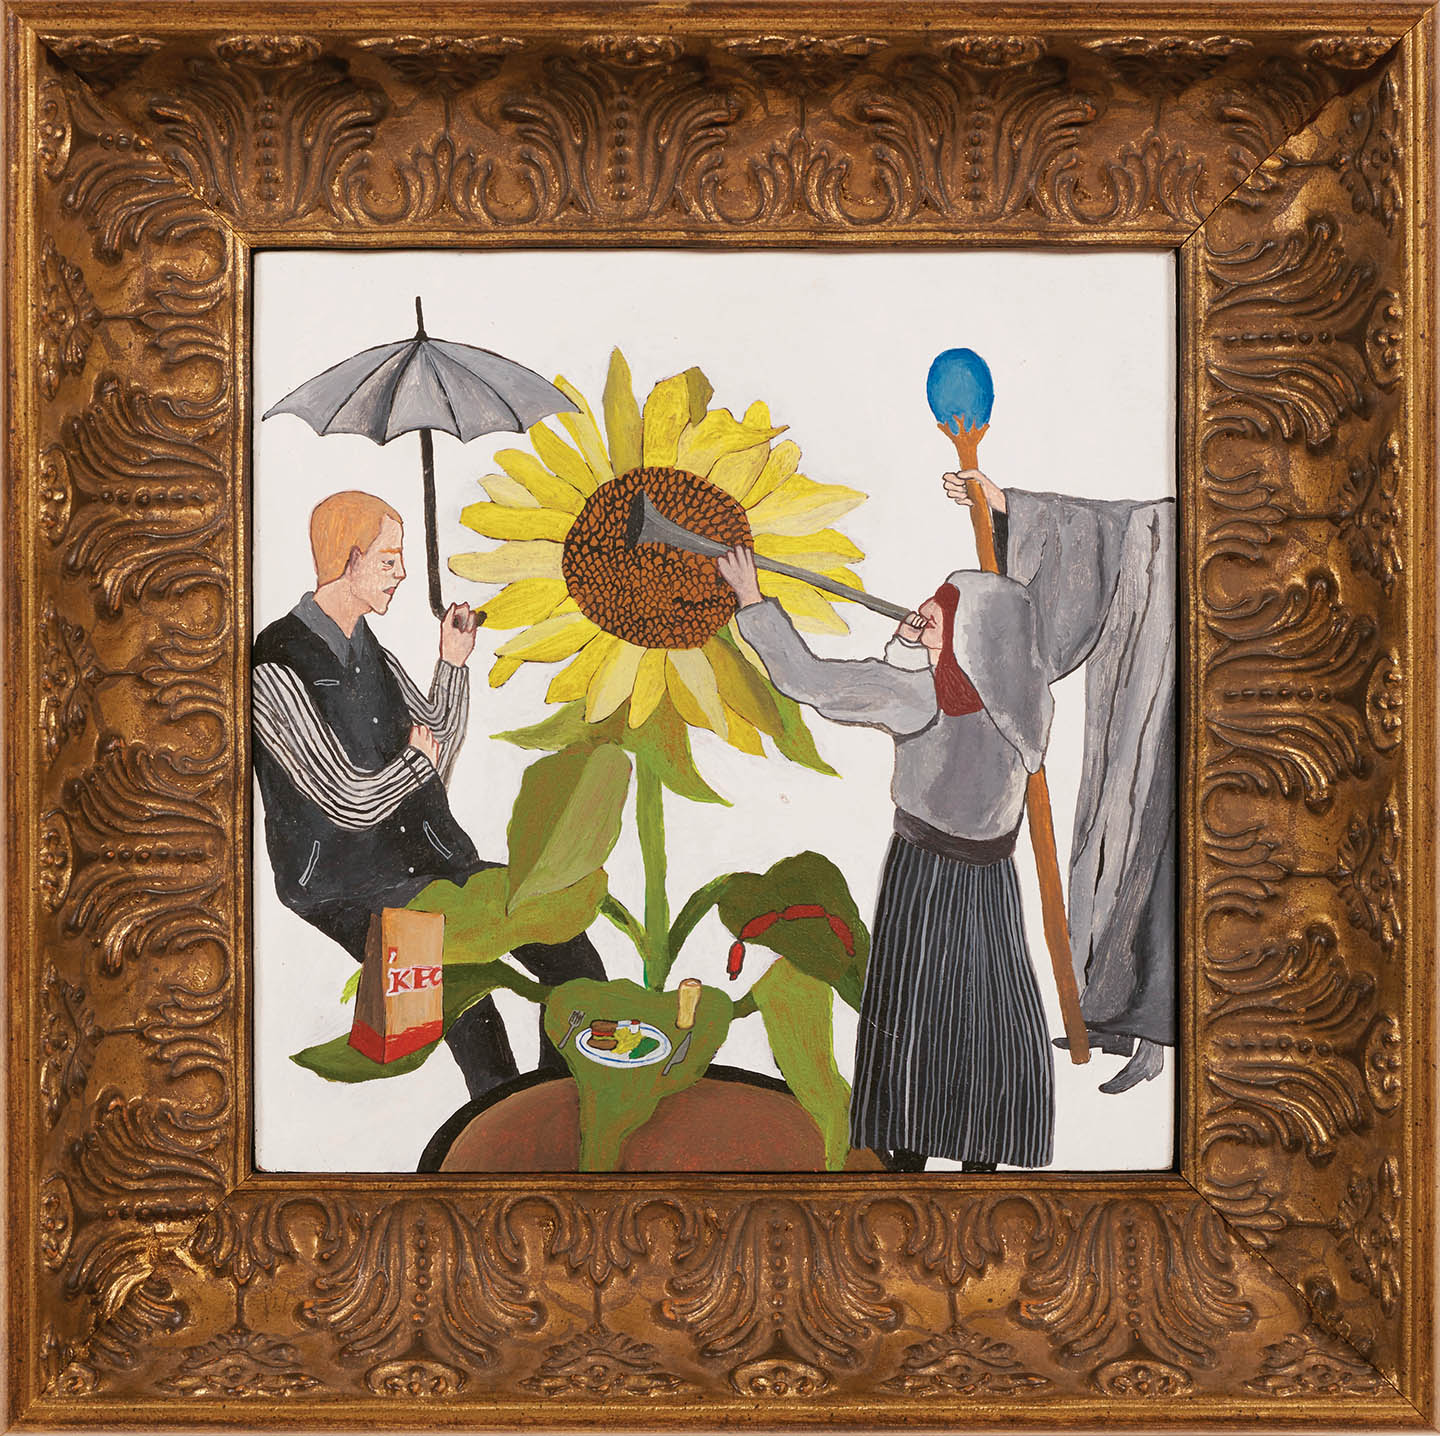 Pat with a Sunflower  2019, acrylic on board with hand painted timber frame, 31.5 x 31.5 cm  SOLD